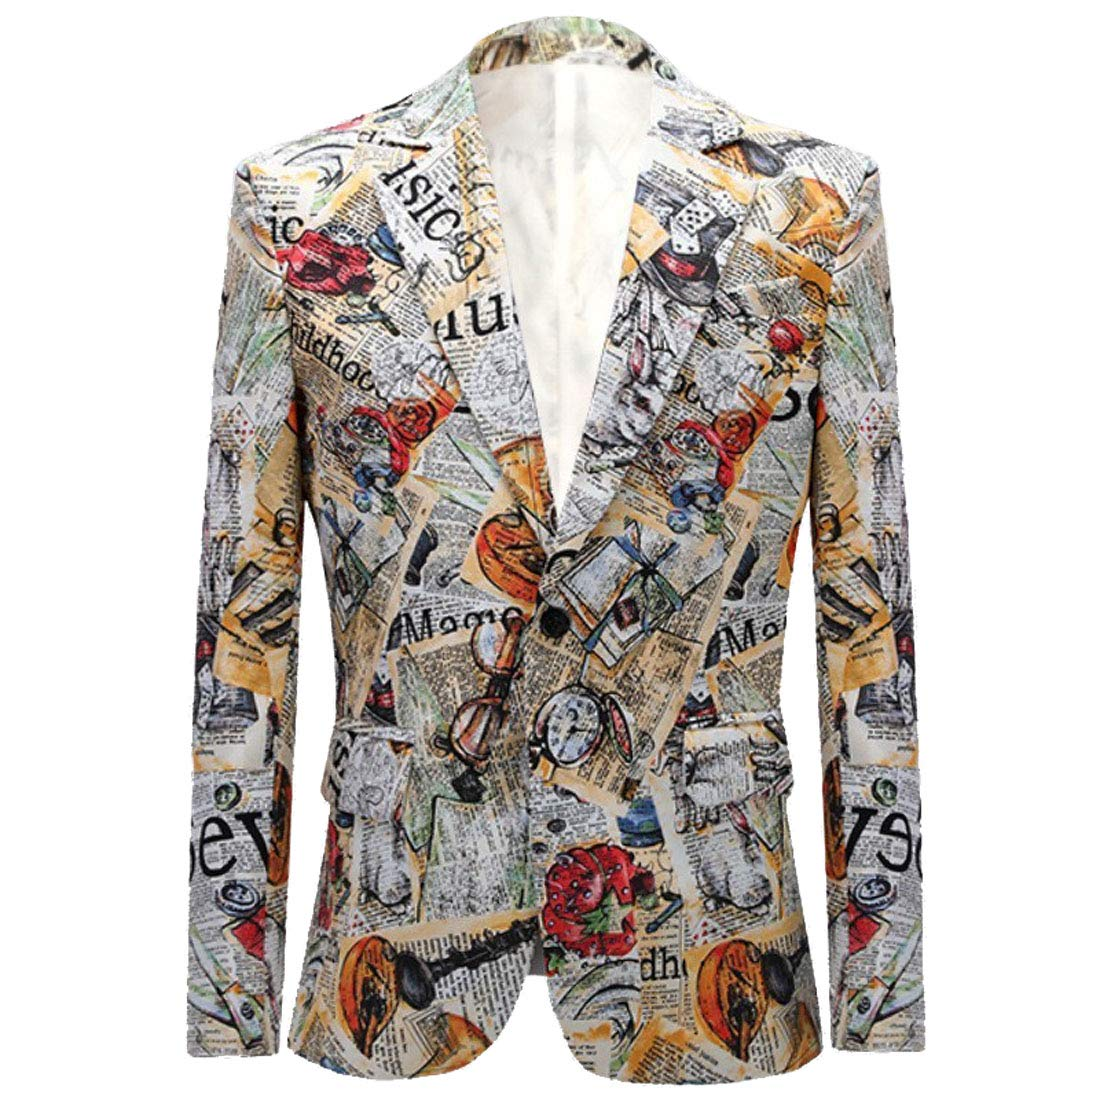 CARFFIV Mens Fashion Colorated Floral Print Suit Jacket Casual Blazer (Newspaper, XL/44R) by CARFFIV